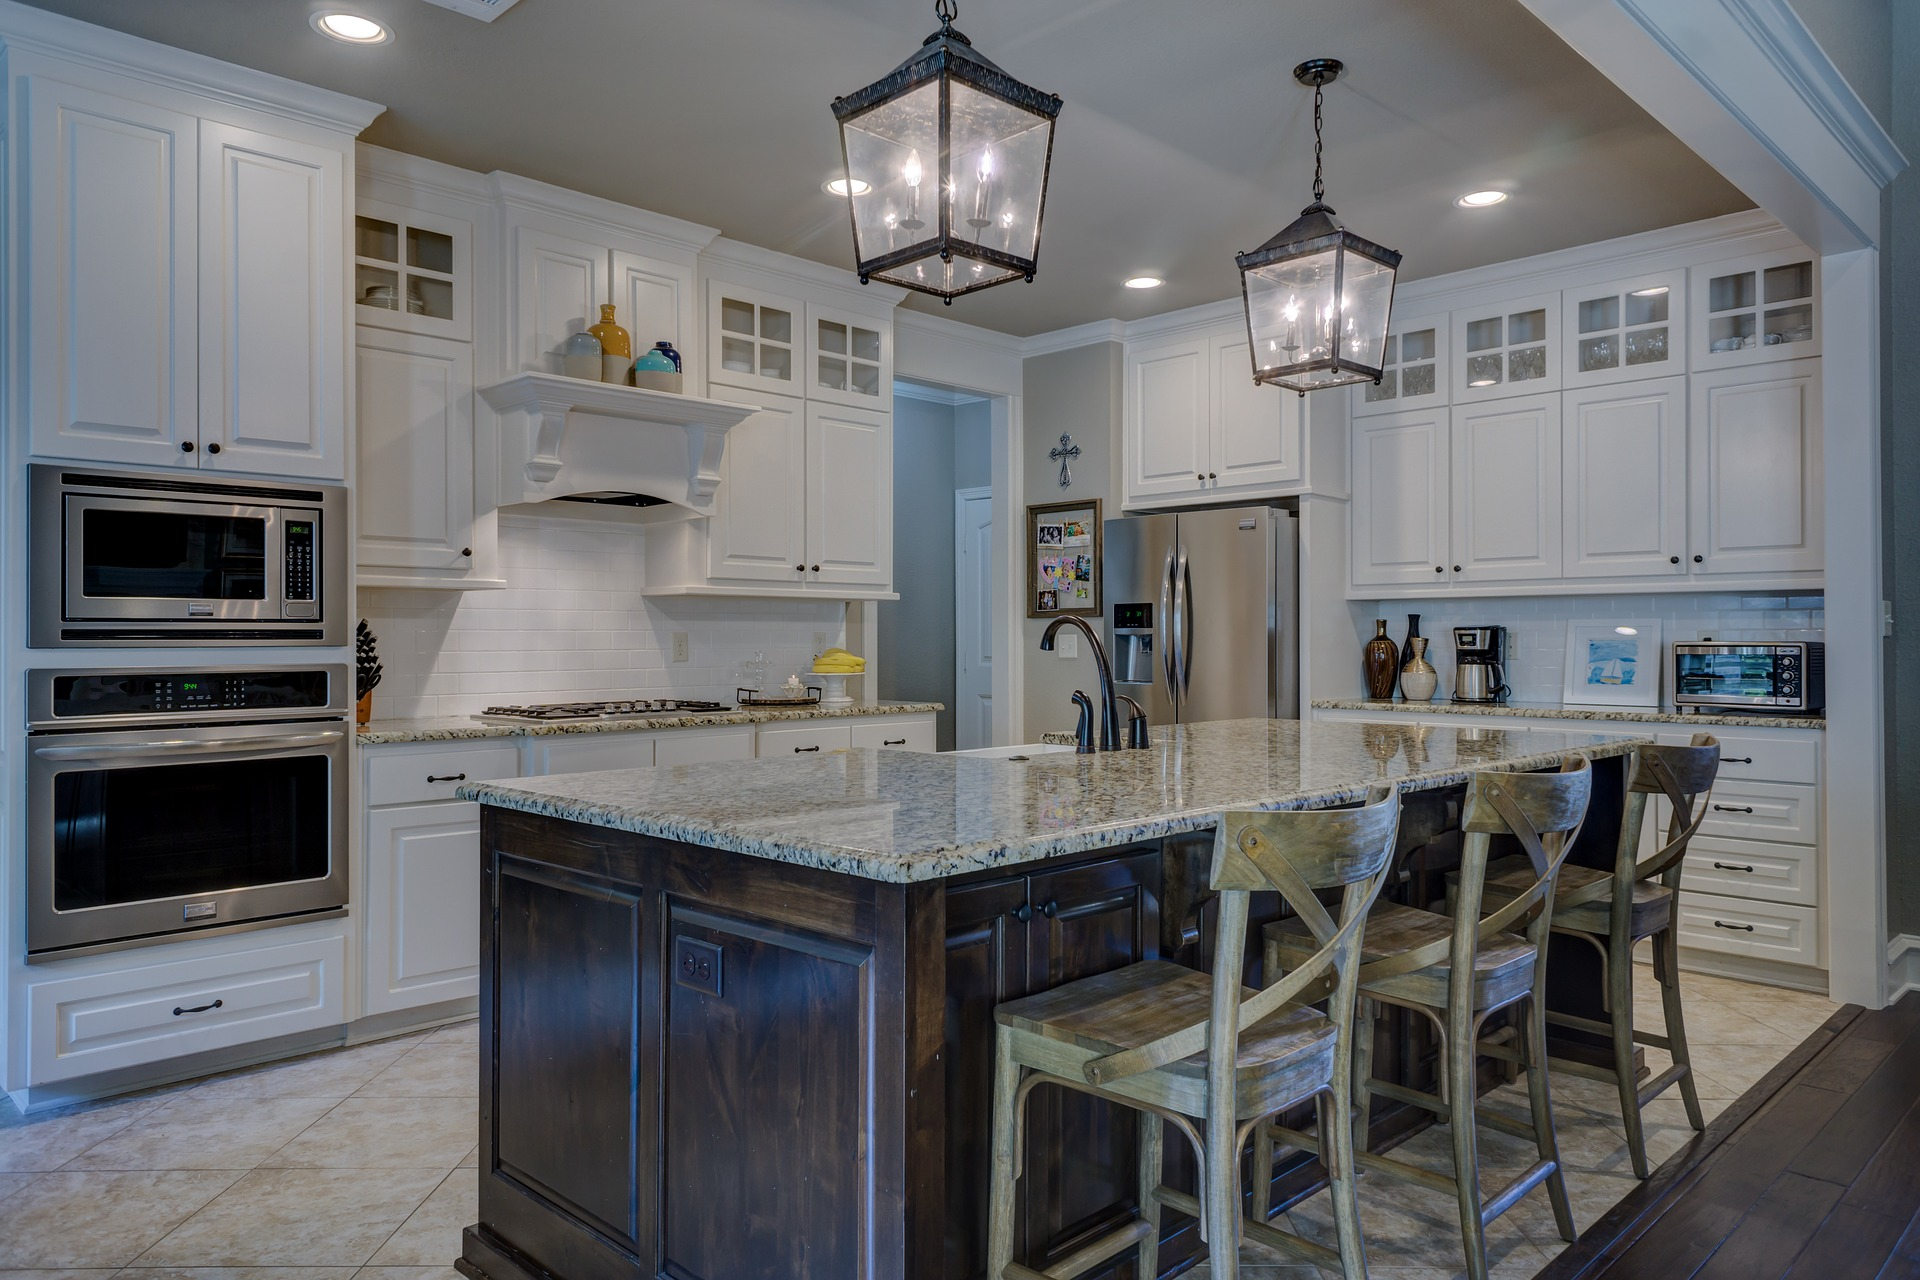 Redesigning Your Kitchen Area Fix-It-Fast Appliance Repair Roswell